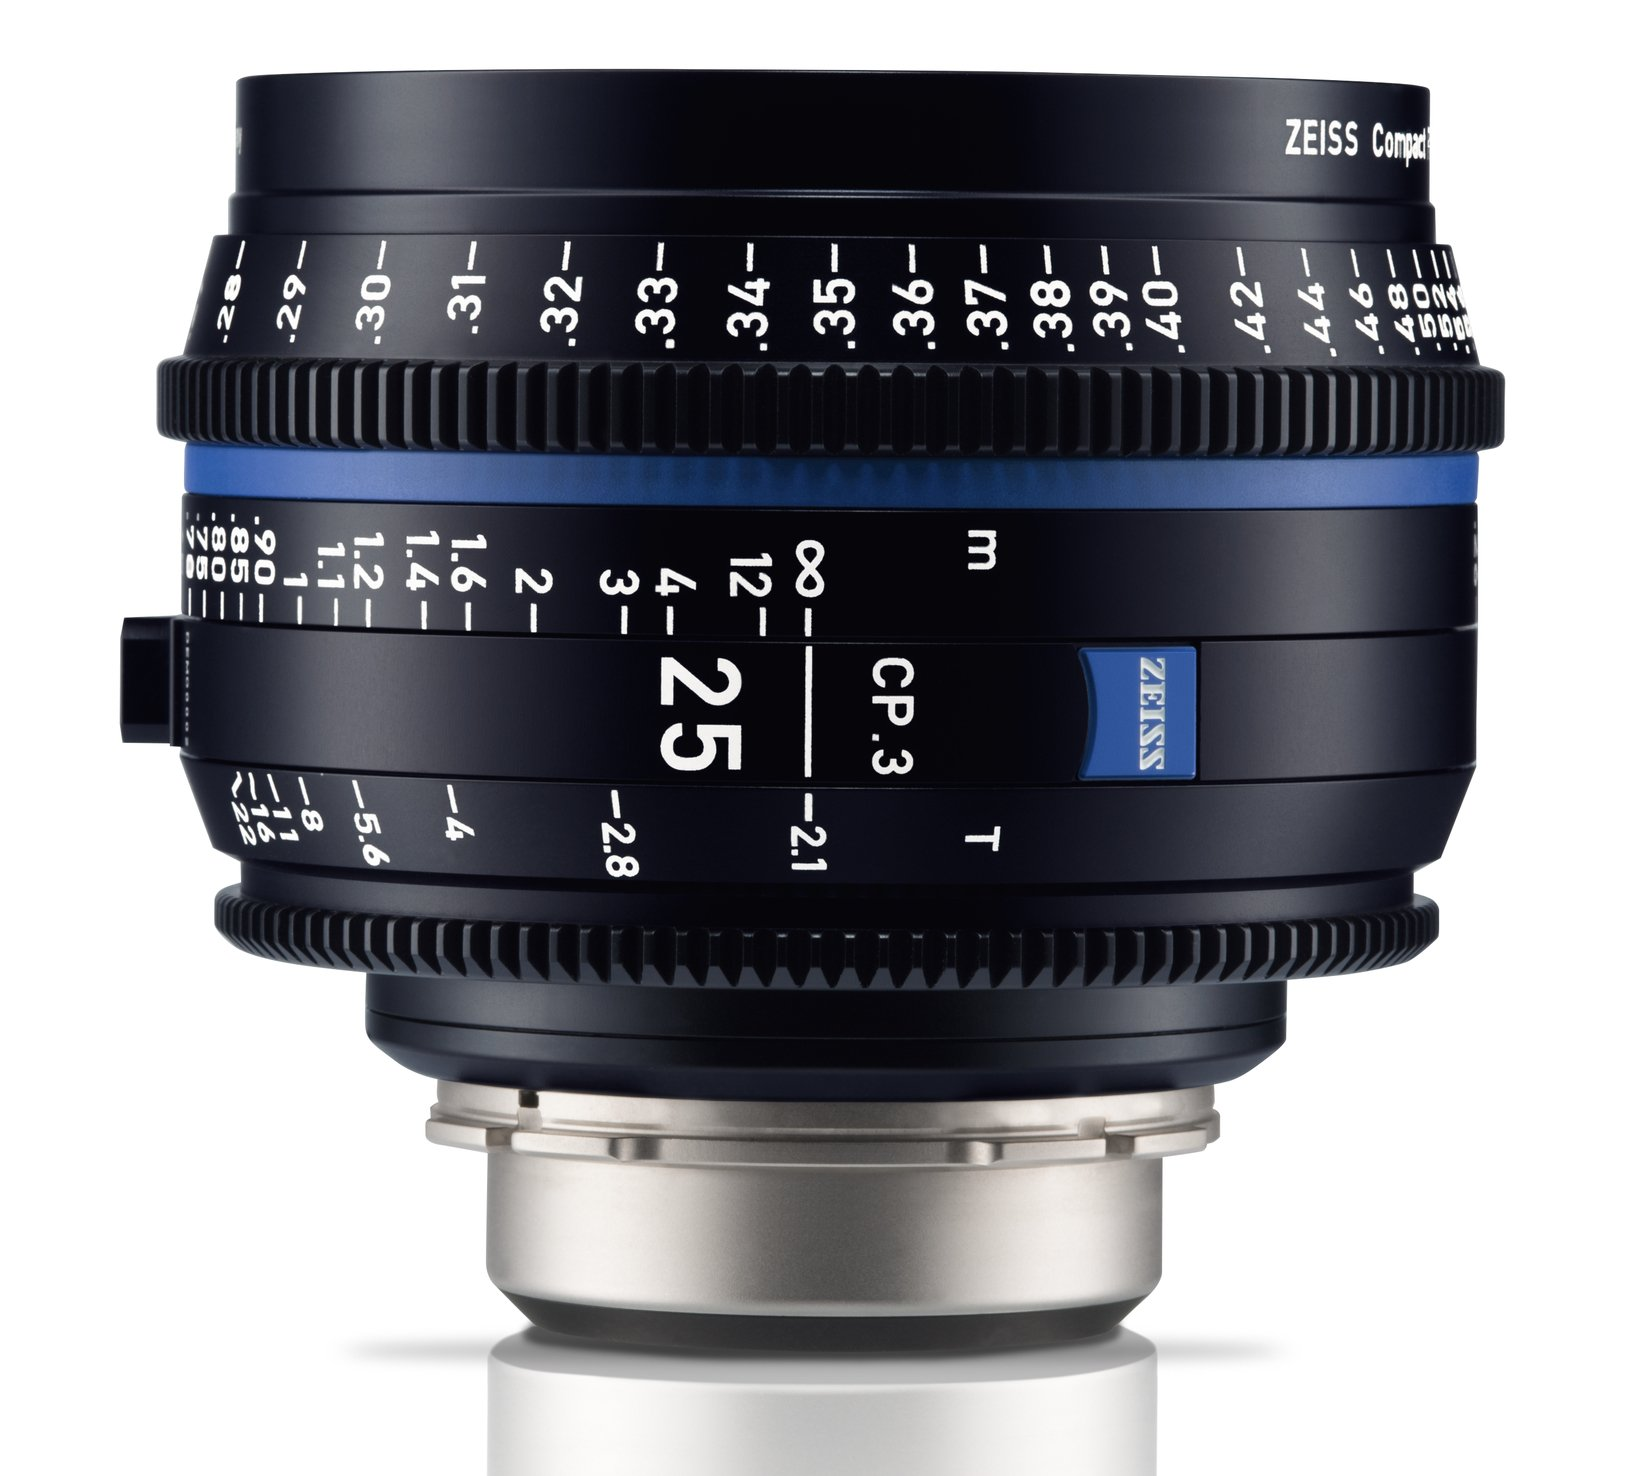 ZEISS CP.3 25 mm T2,1 Distagon T* PL-mount